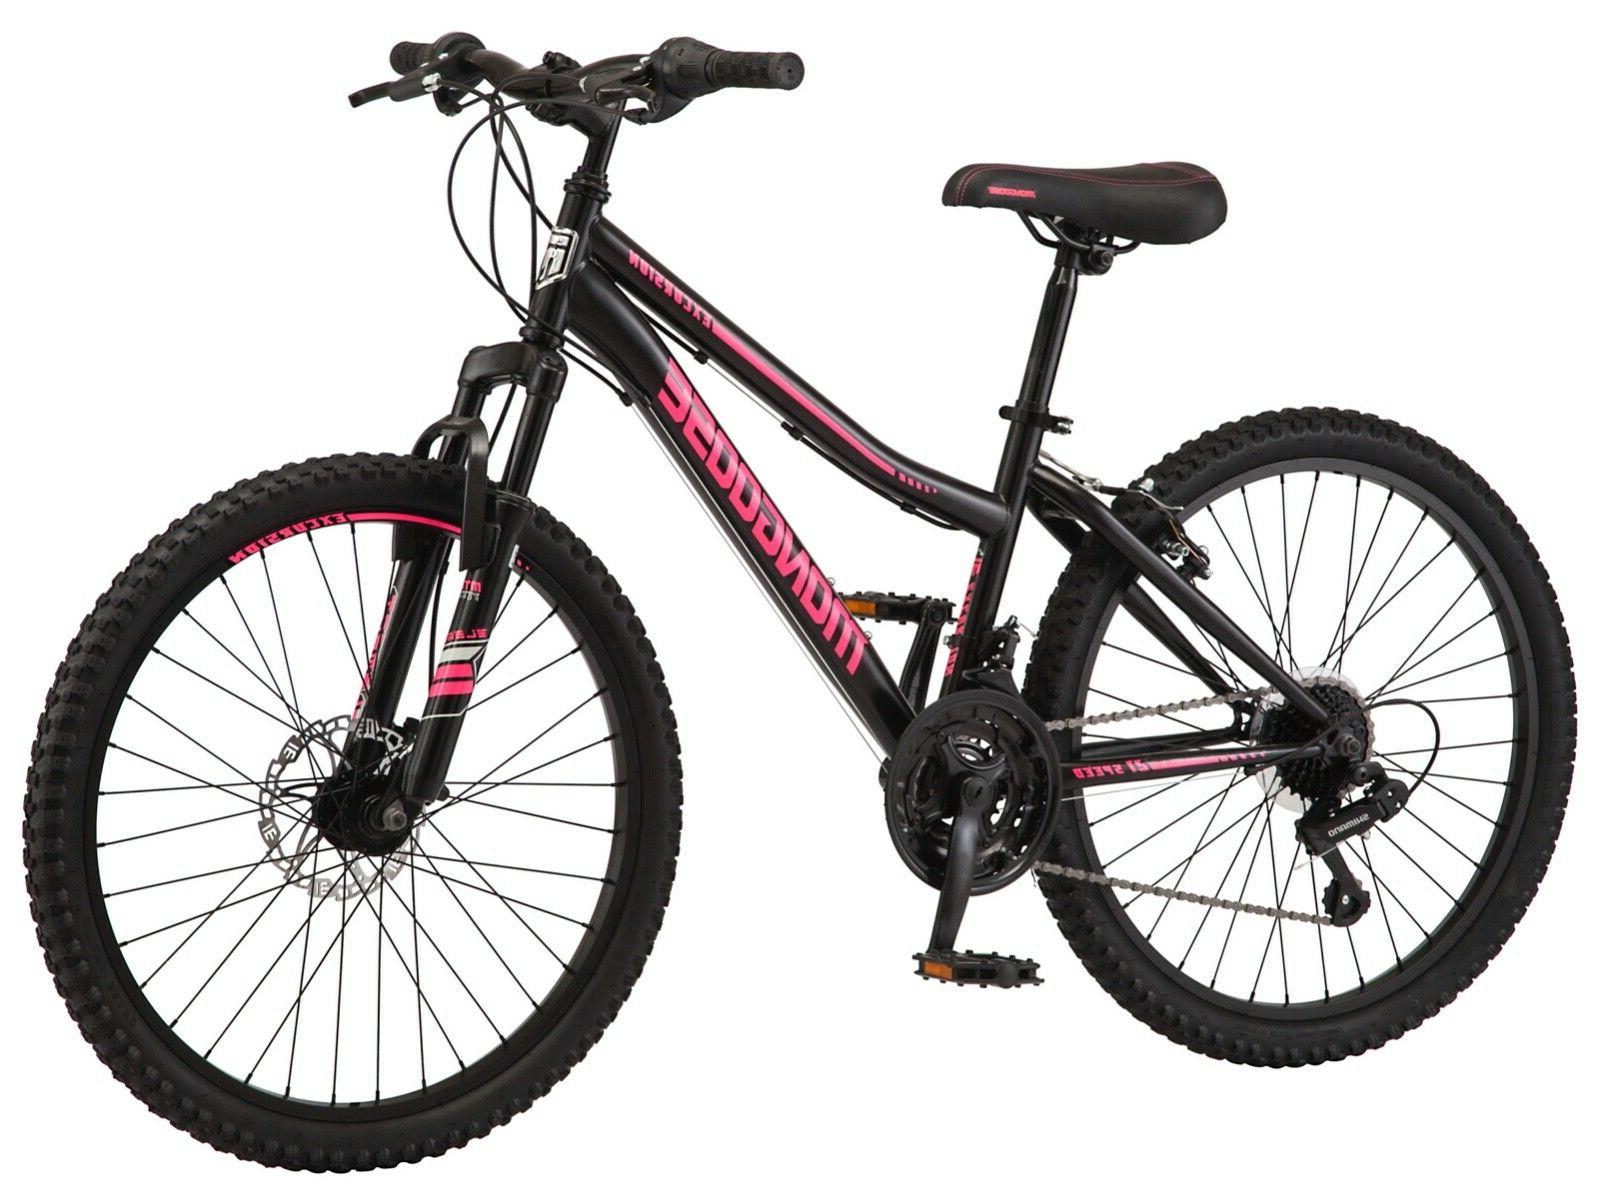 Mongoose 24-inch black